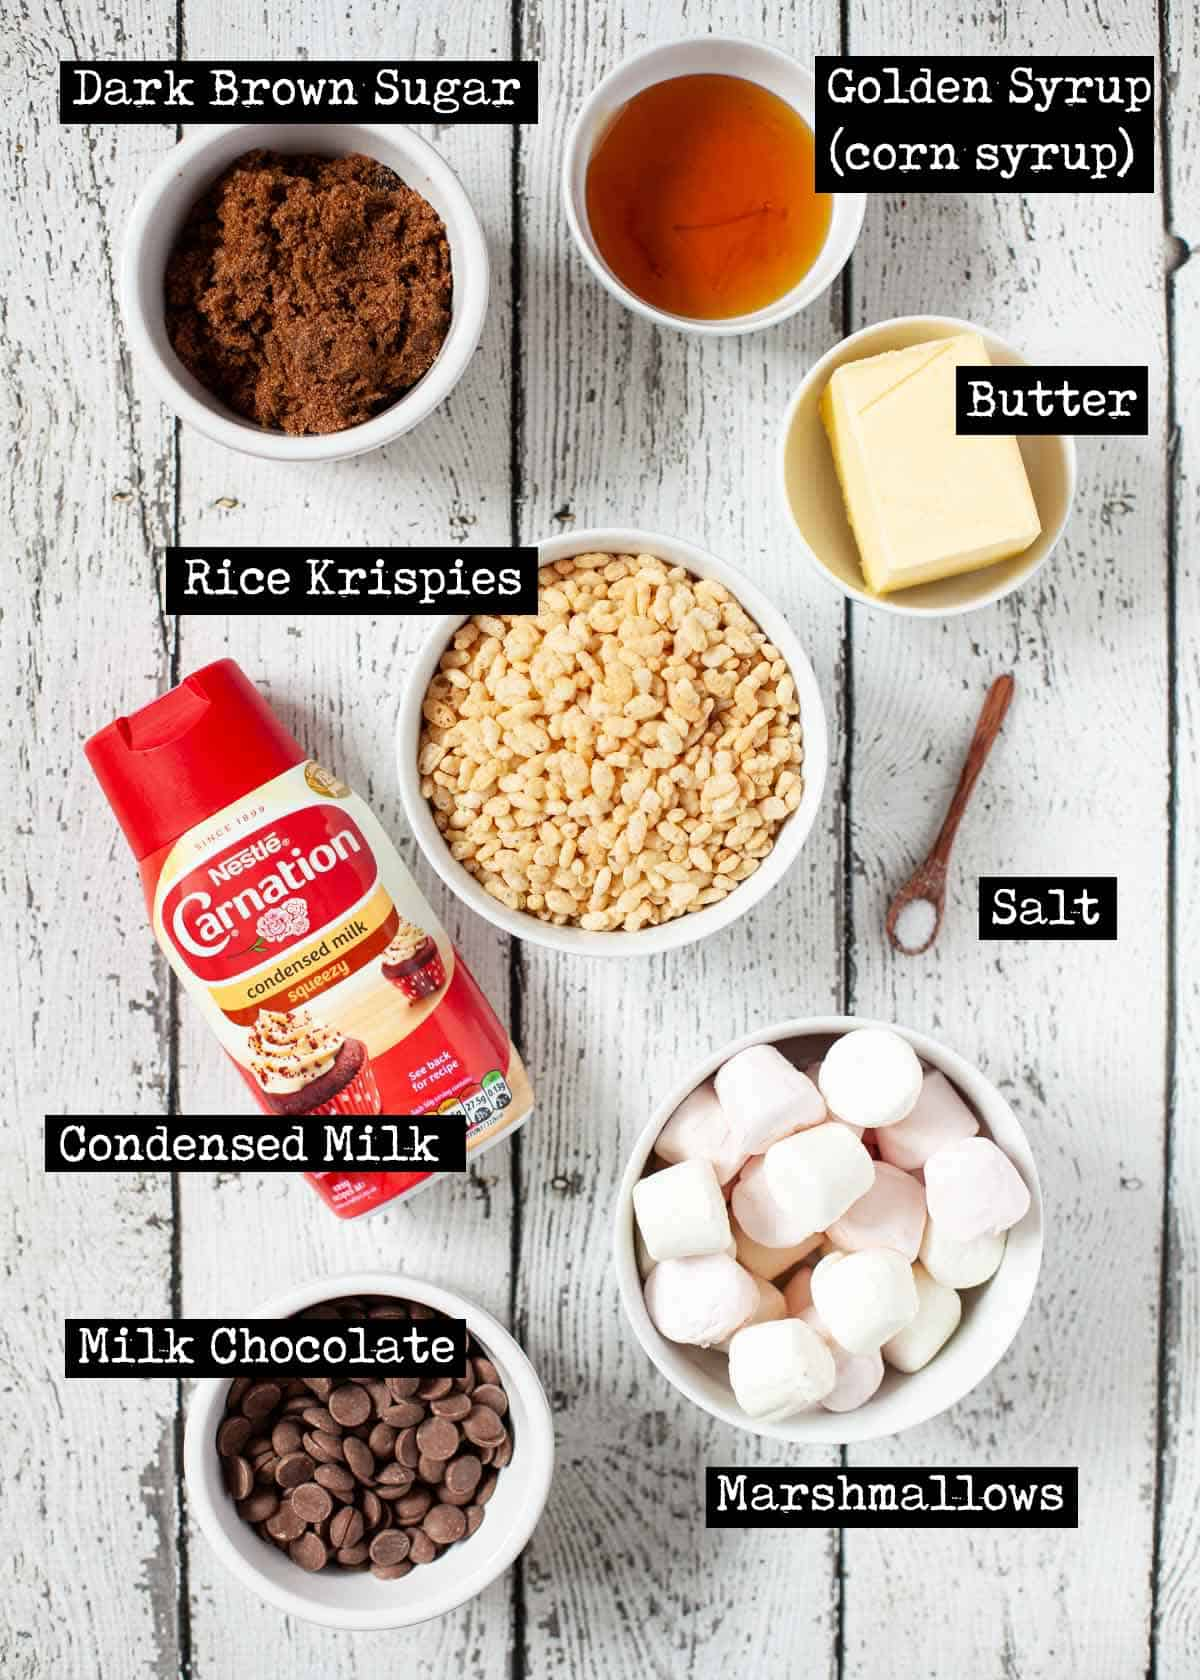 Labelled ingredients for chocolate caramel rice krispie treats